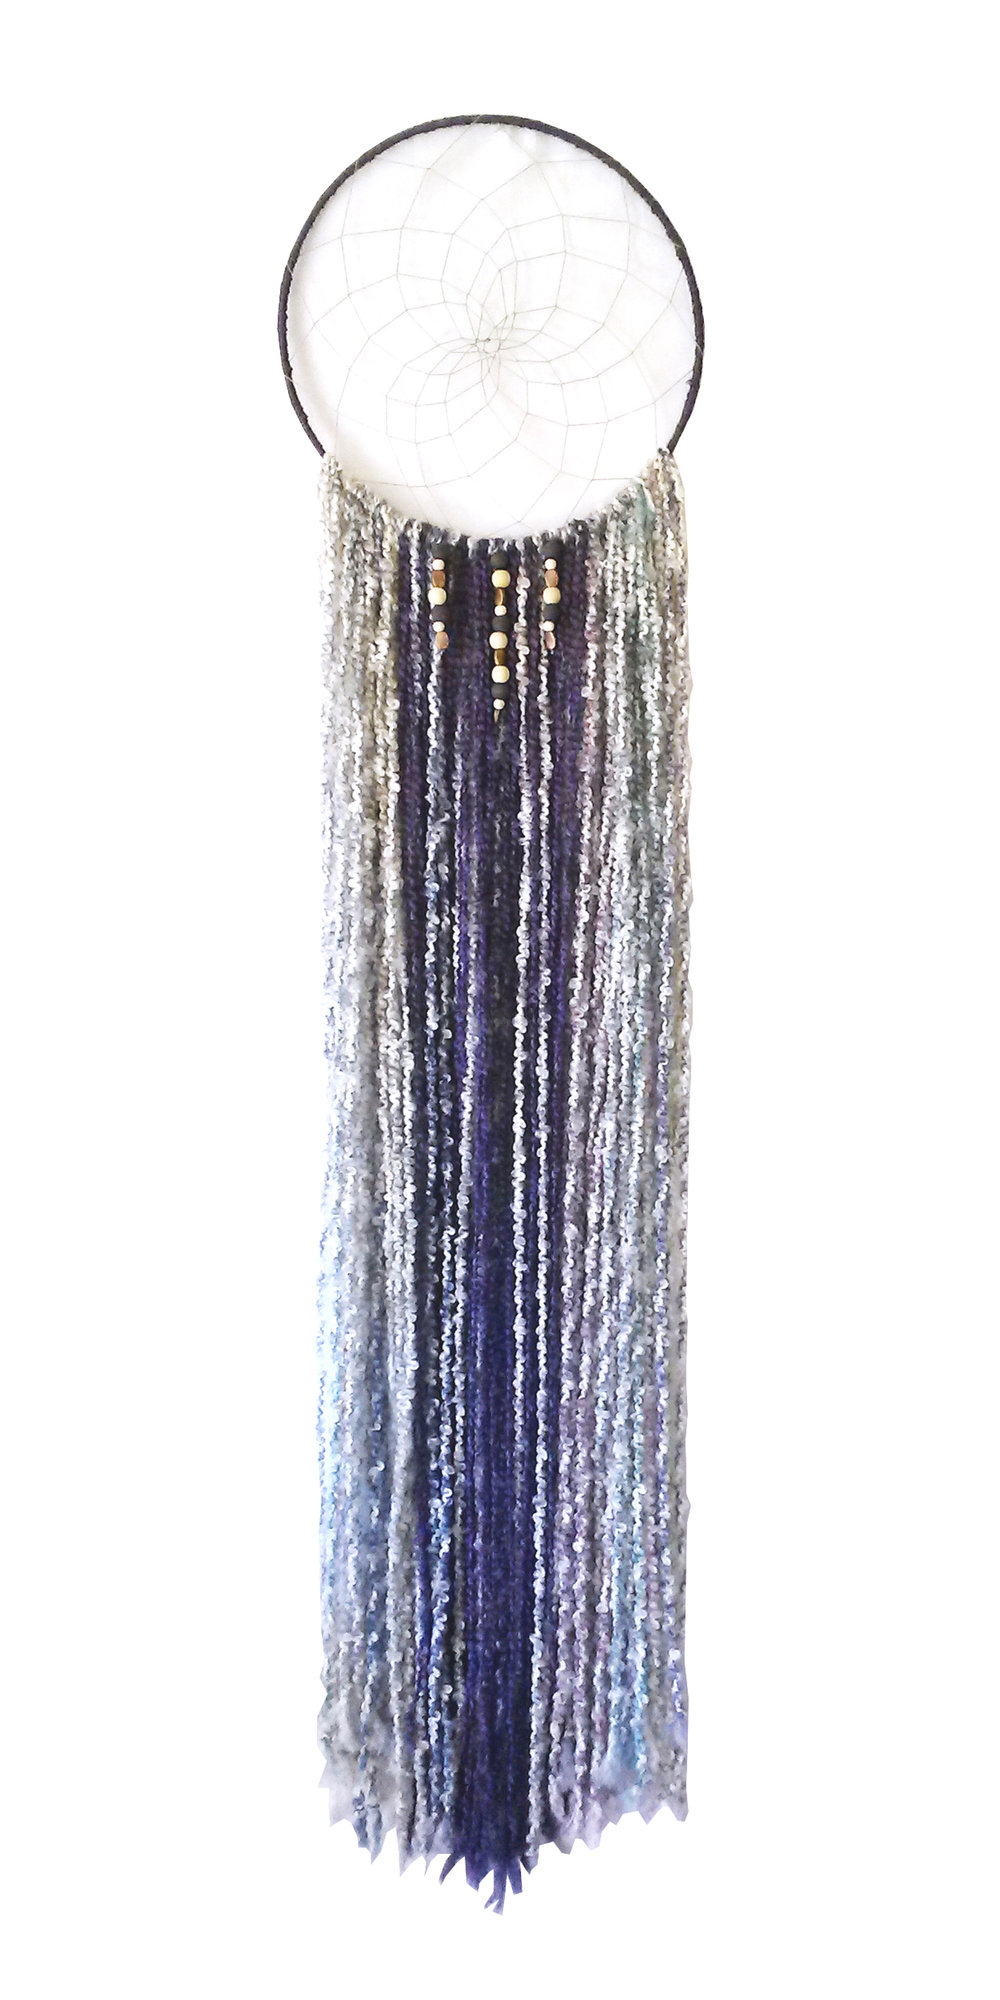 "Soft Whisper Dreamcatcher 14"" x 64"" Metal hoop, yarn, cord, beads Sold to private collector"